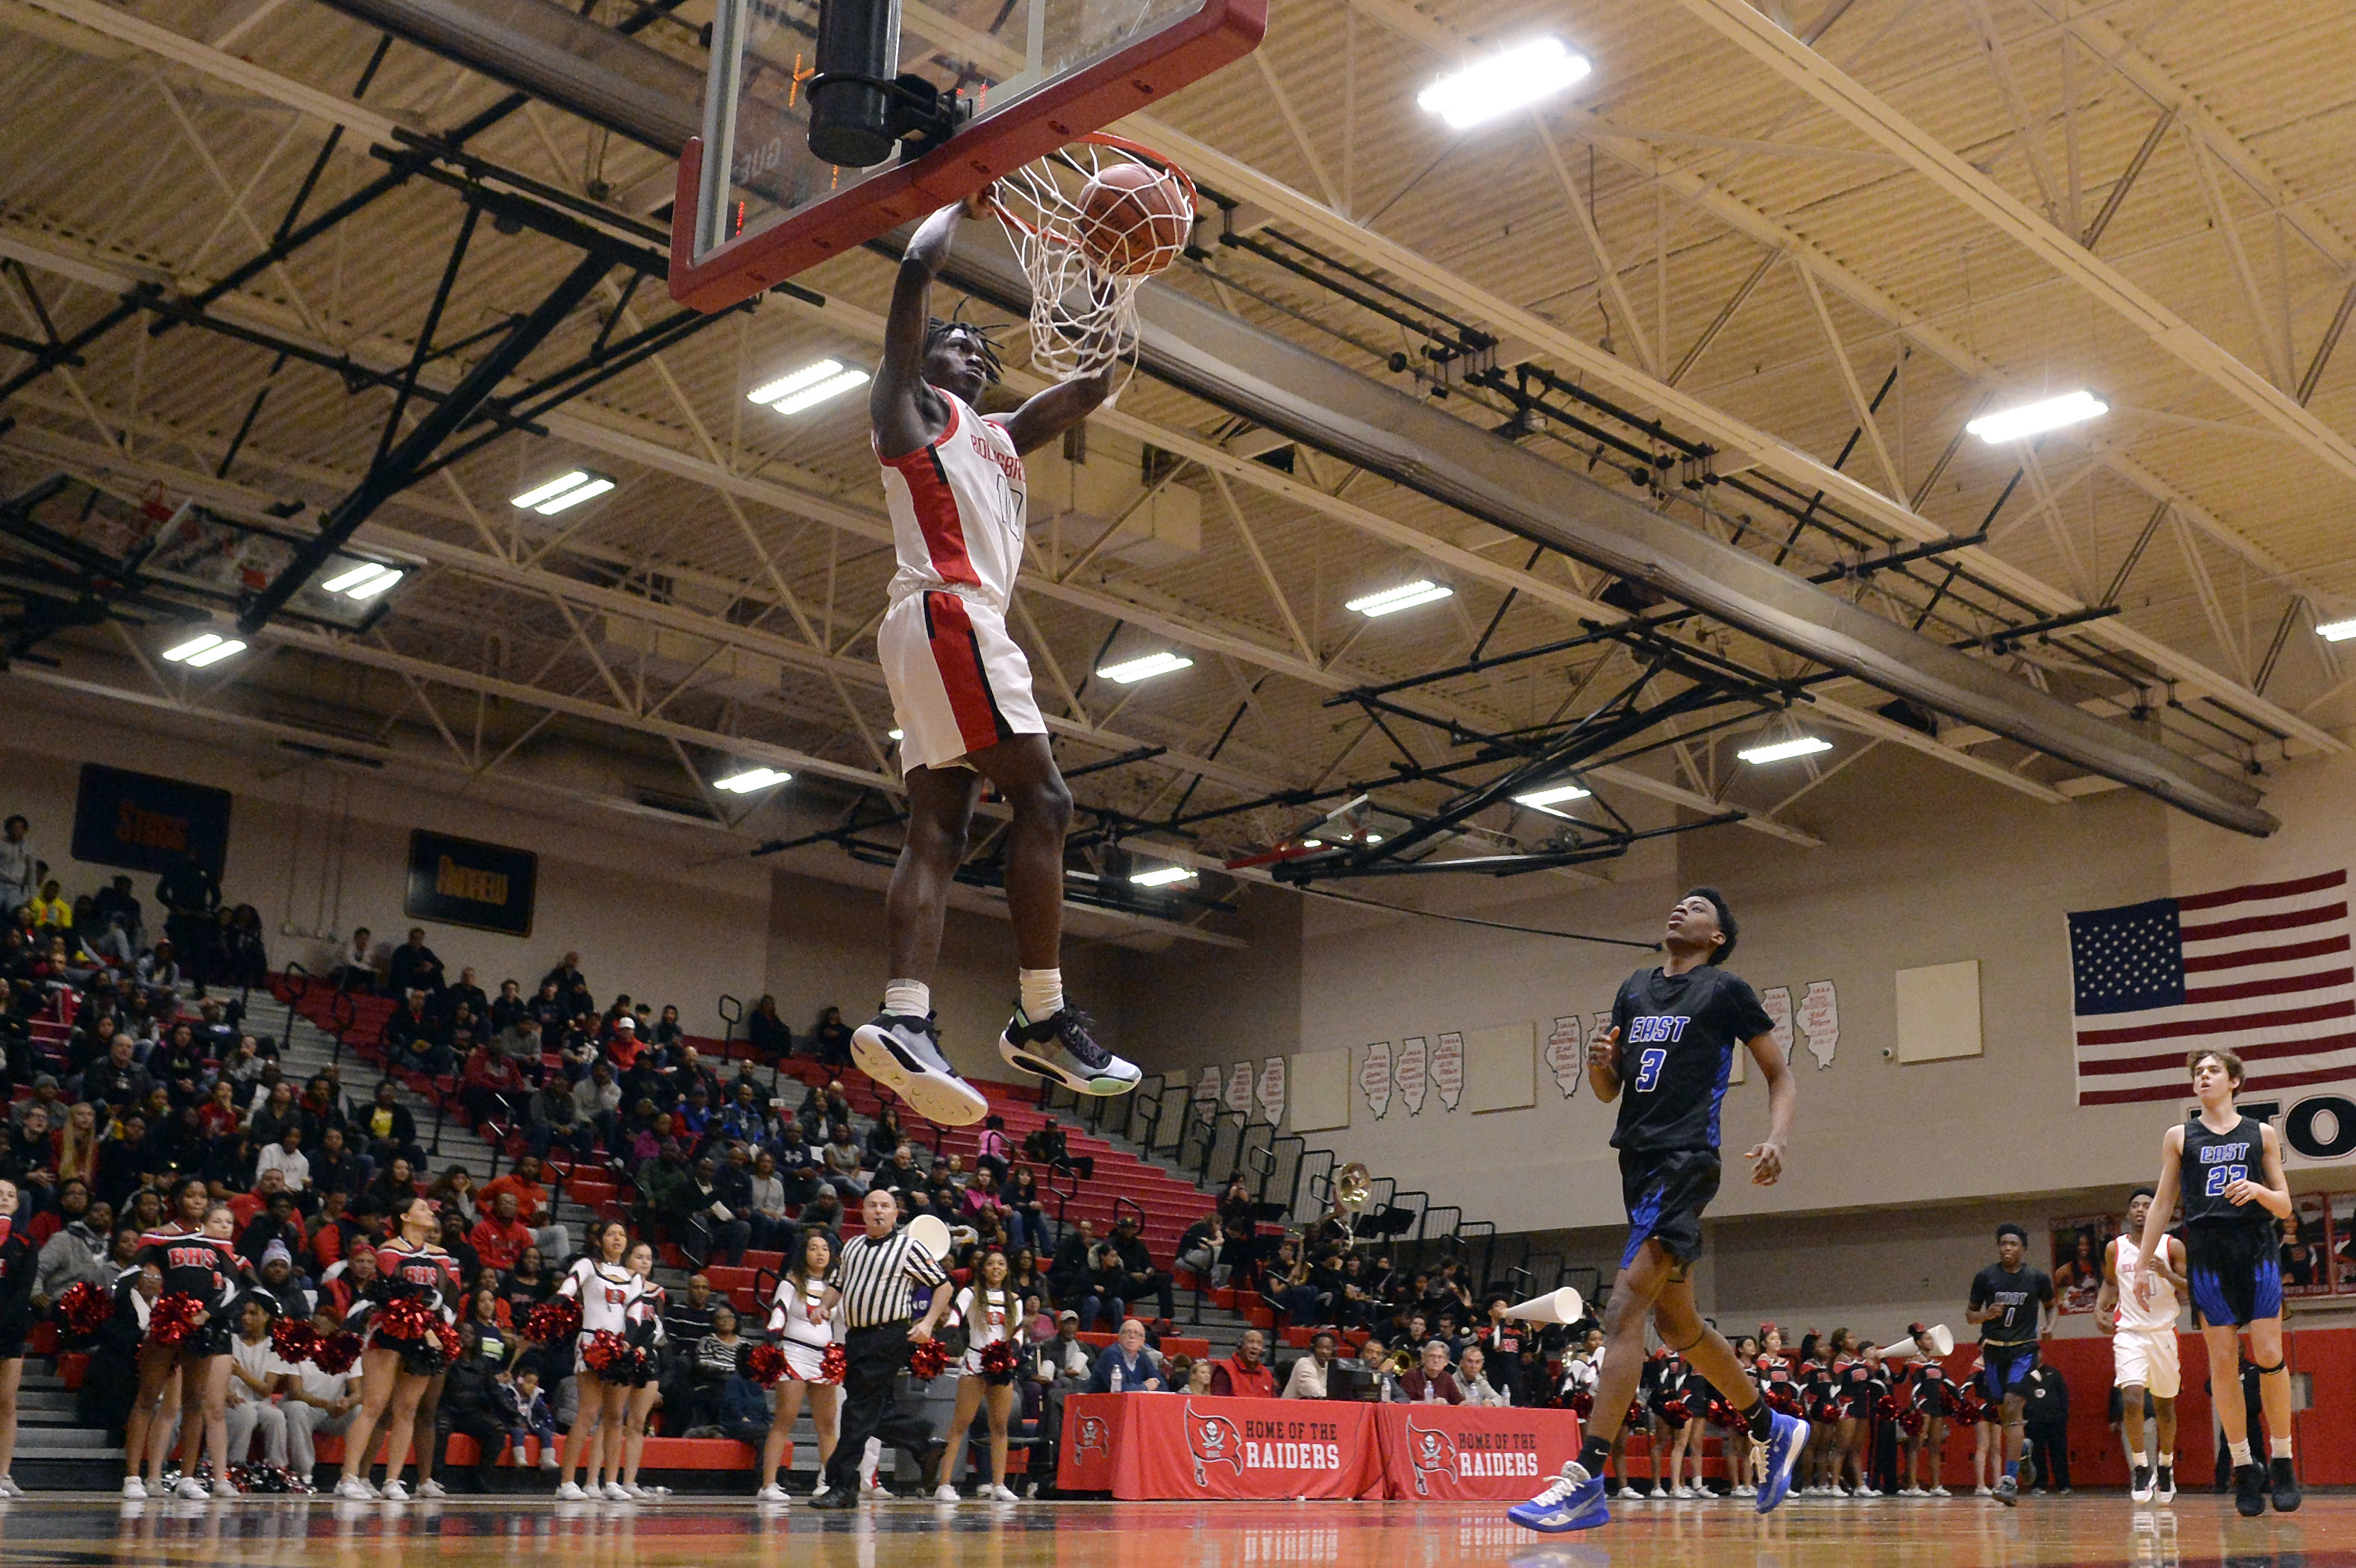 Bolingbrook guard Darius Burford (10) dunks the basketball in the first half of the game against Lincoln-Way East.